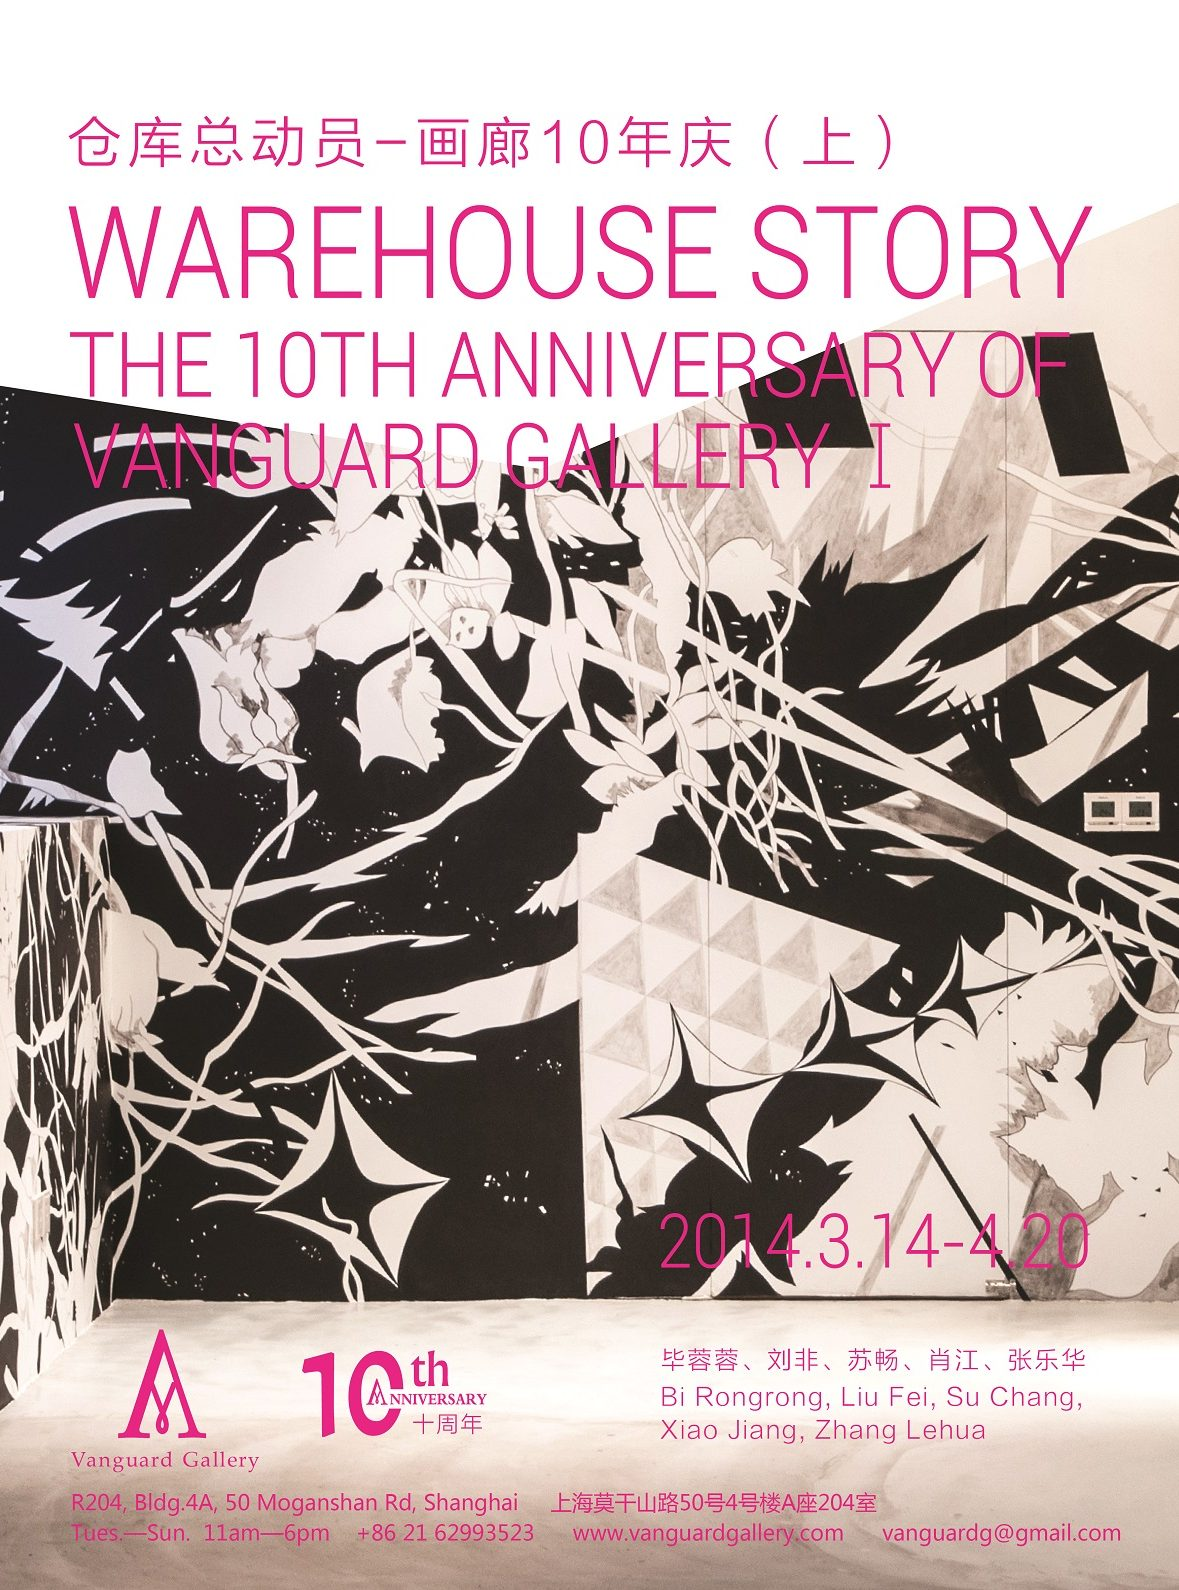 Warehouse Story – The 10th Anniversary of Vanguard Gallery I